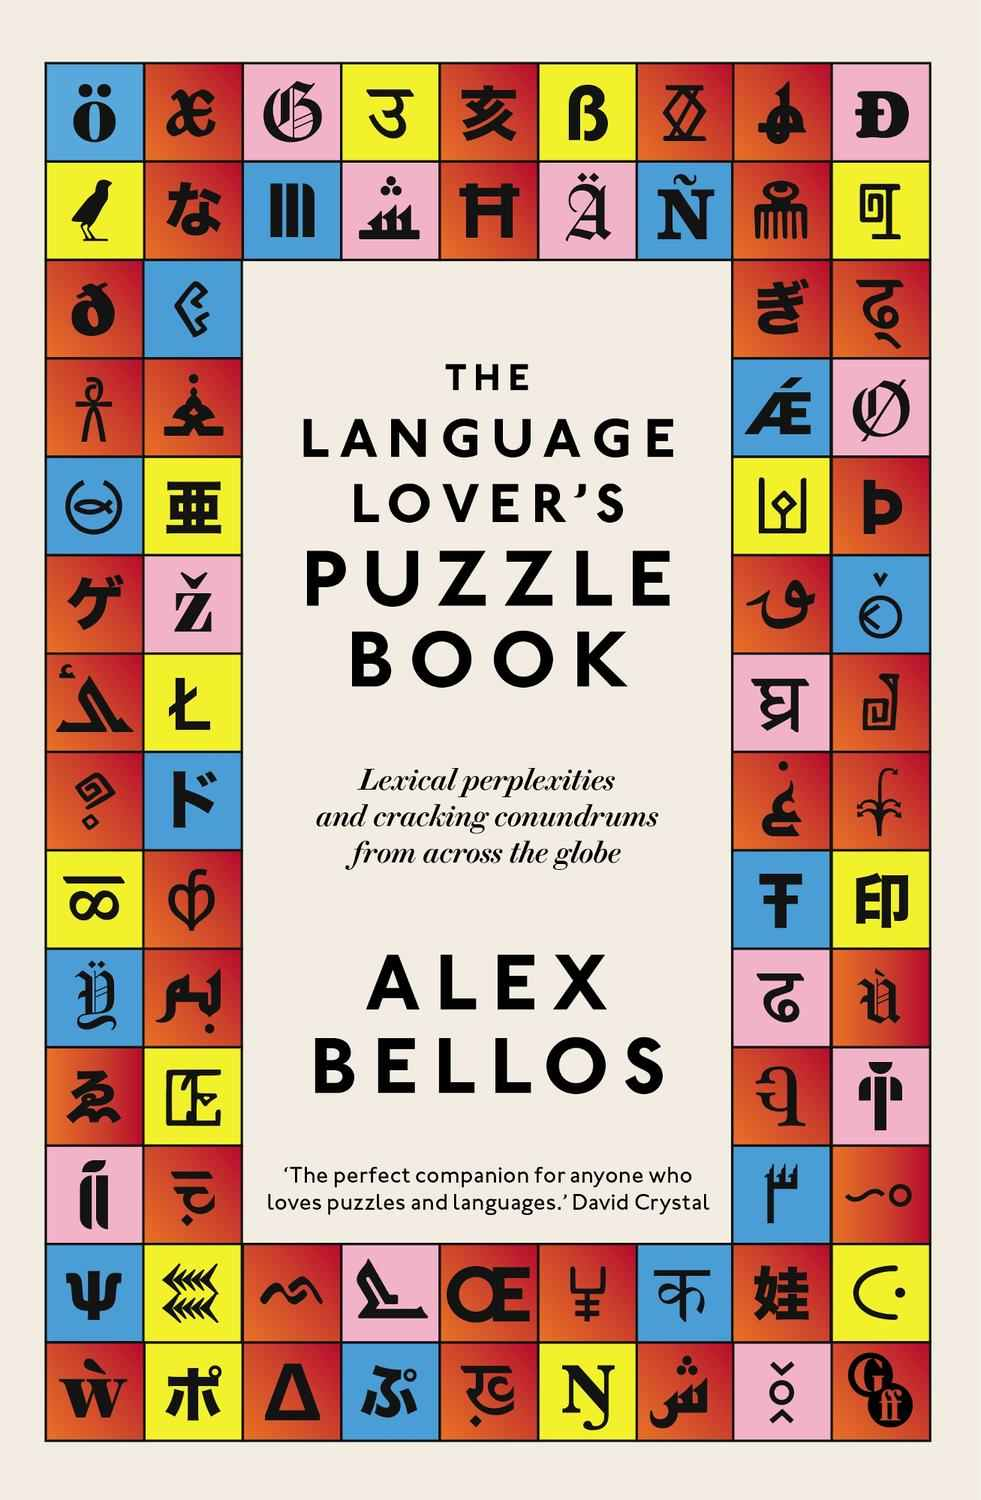 Signed copy of The Language Lover's Puzzle Book by Alex Bellos (Paperback)